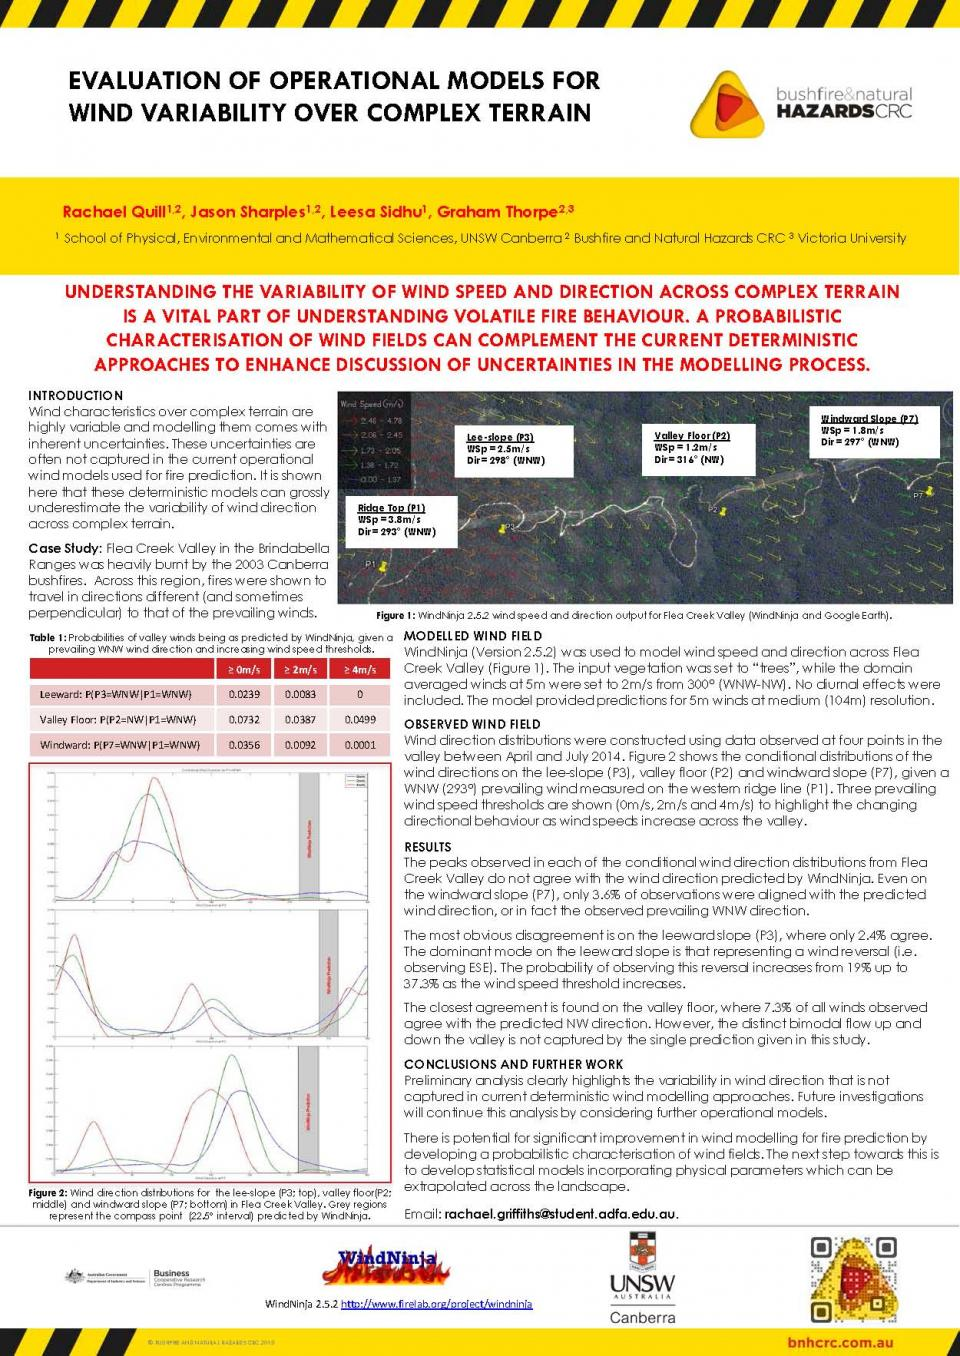 Evaluation of Operational Models for Wind Variability Over Complex Terrain